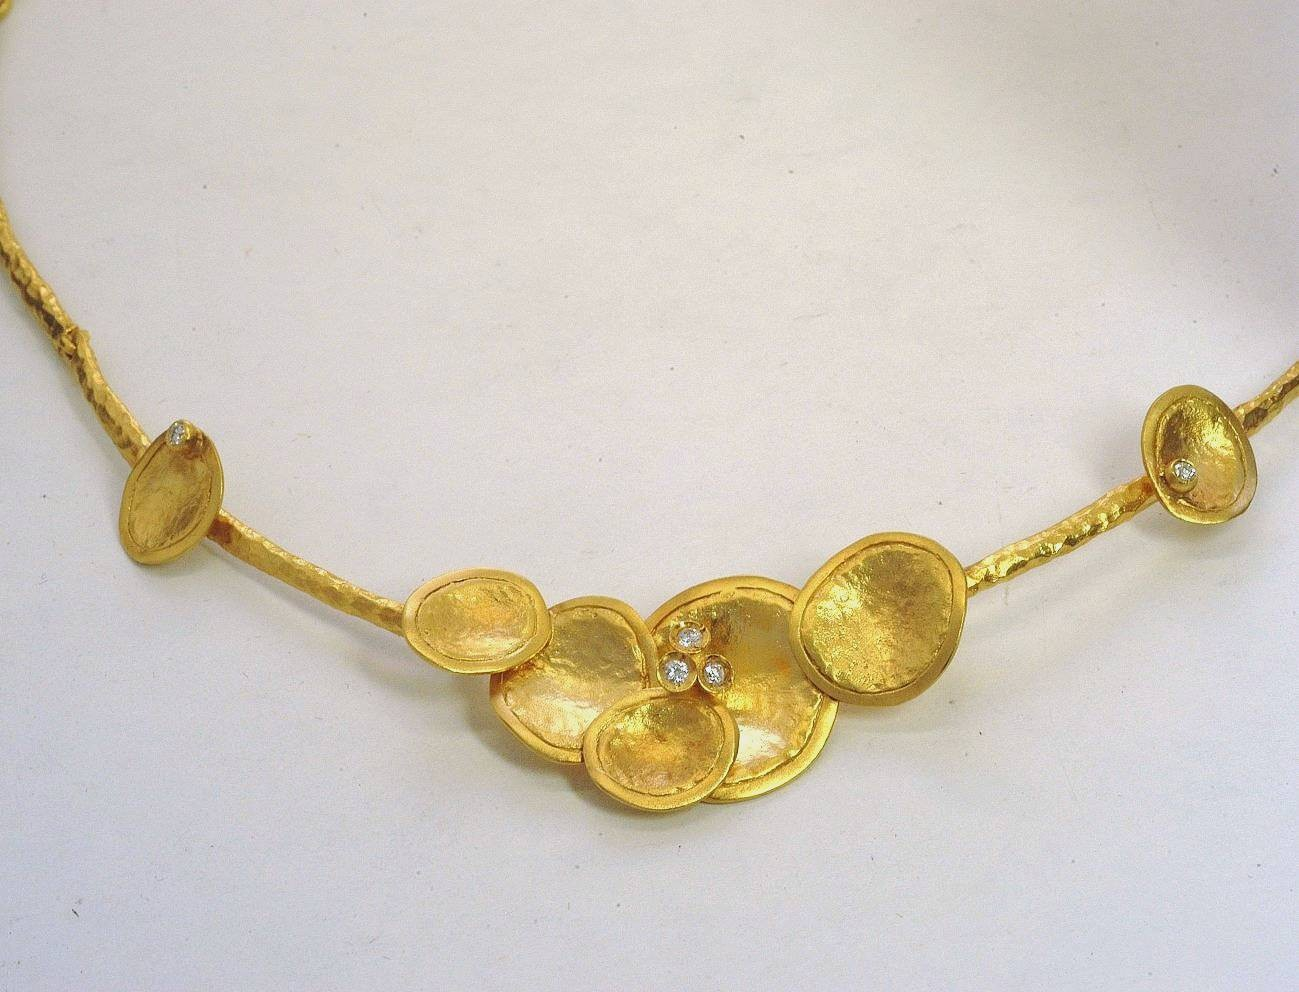 Gold necklace 14K or 18K with synthetic stones or diamonds brilliant cut